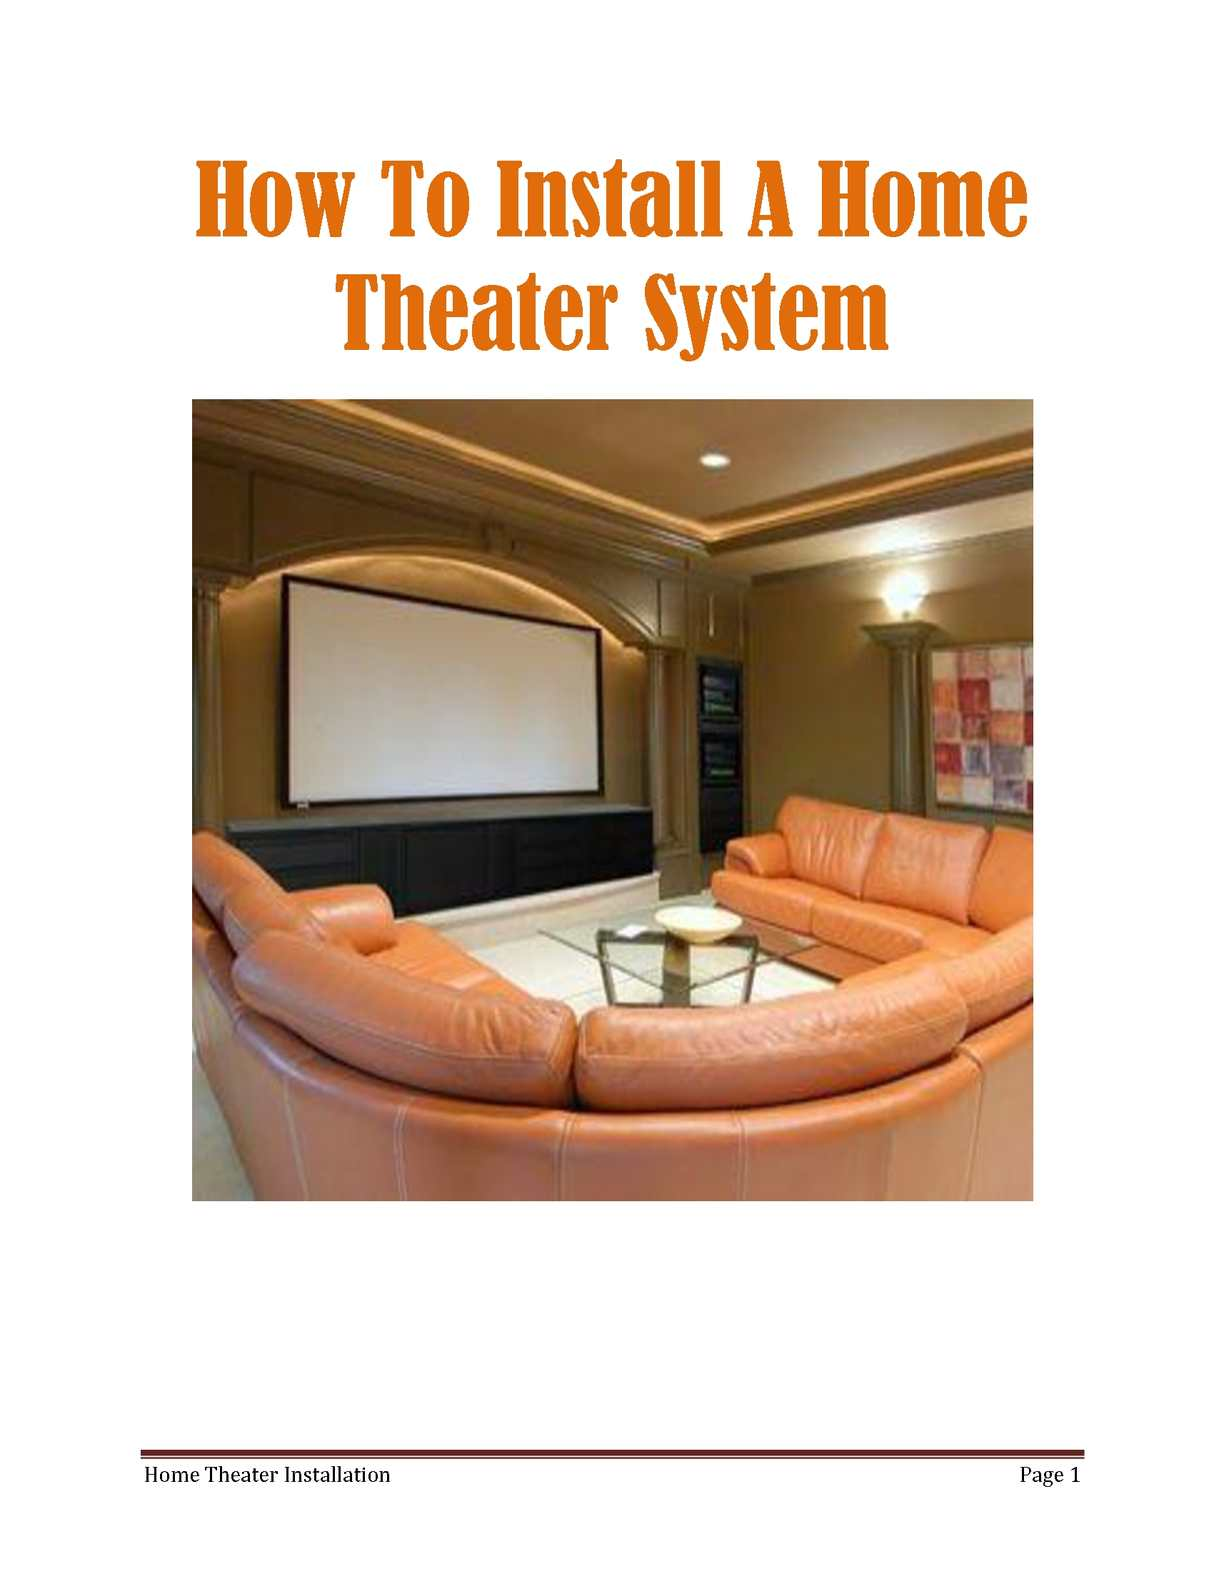 Calamo Do It Yourself Home Theater Installation How To Install System